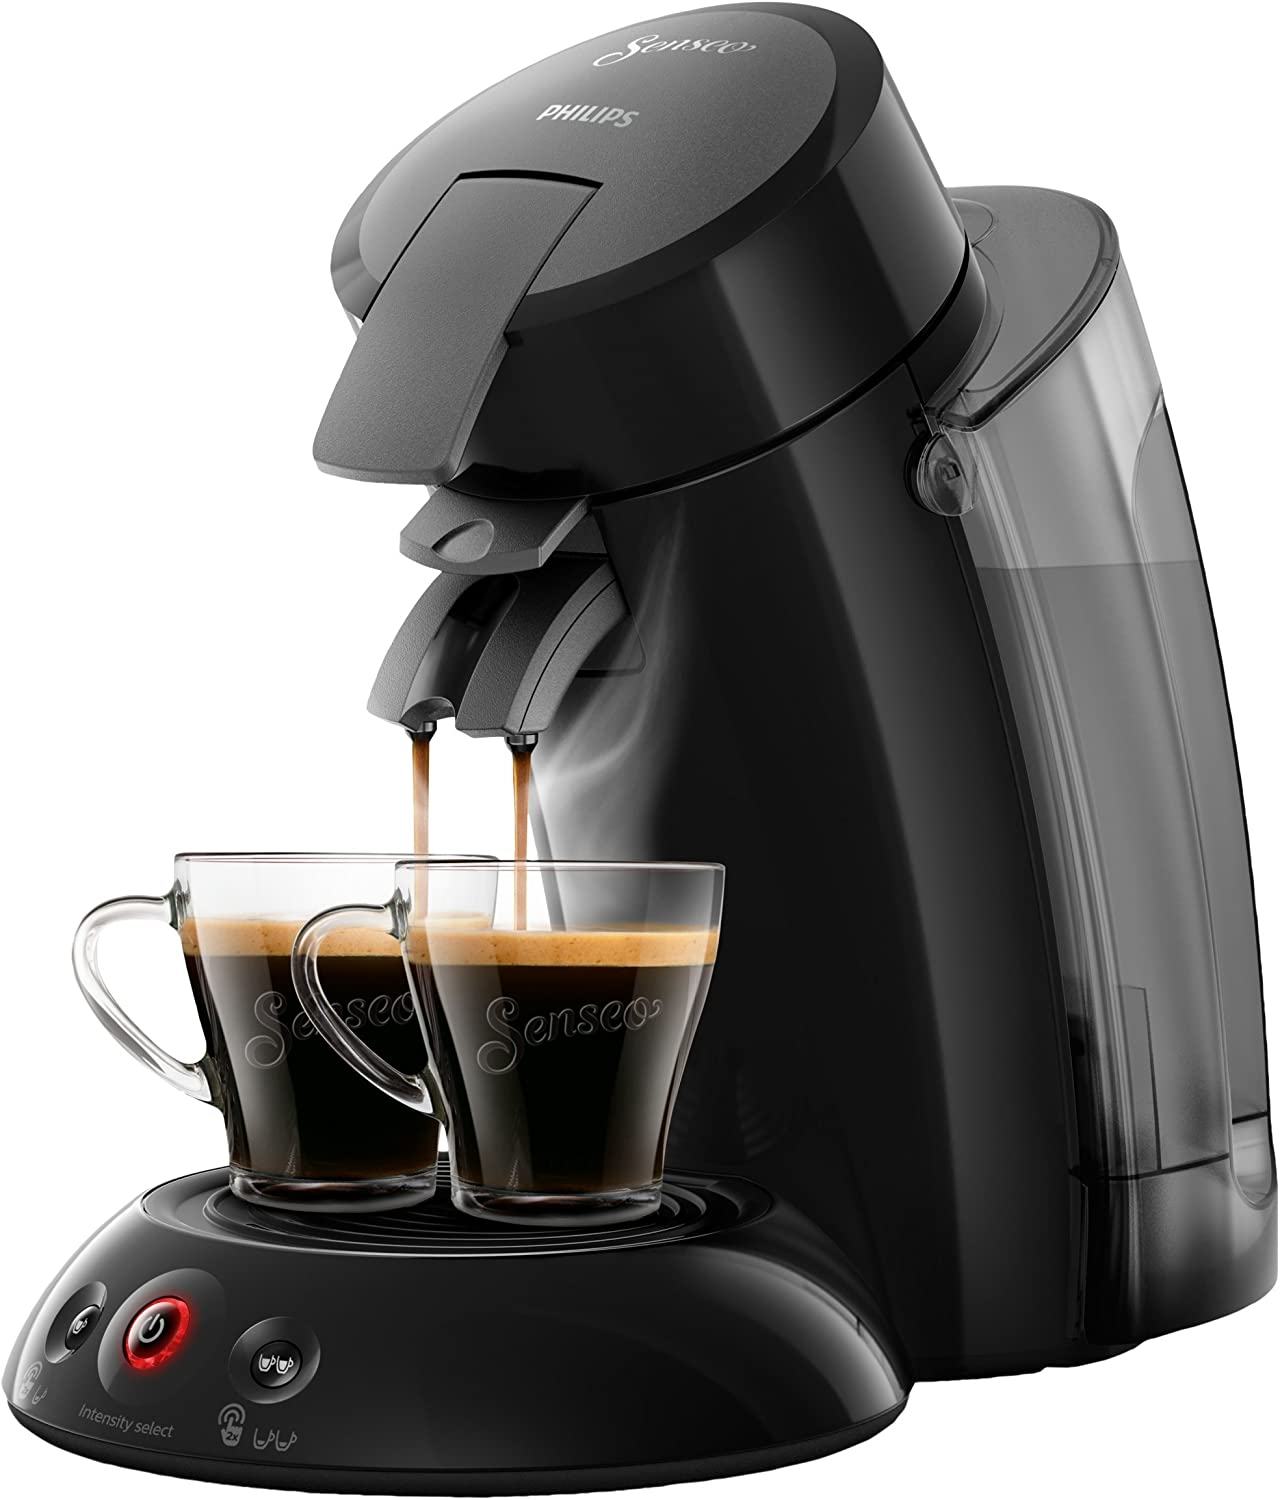 Philips Senseo Original XL HD6555/22 Cafetera Monodosis con Tecnología Coffee Boost, Negro, 22.5x46.6x37 cm: Philips: Amazon.es: Hogar